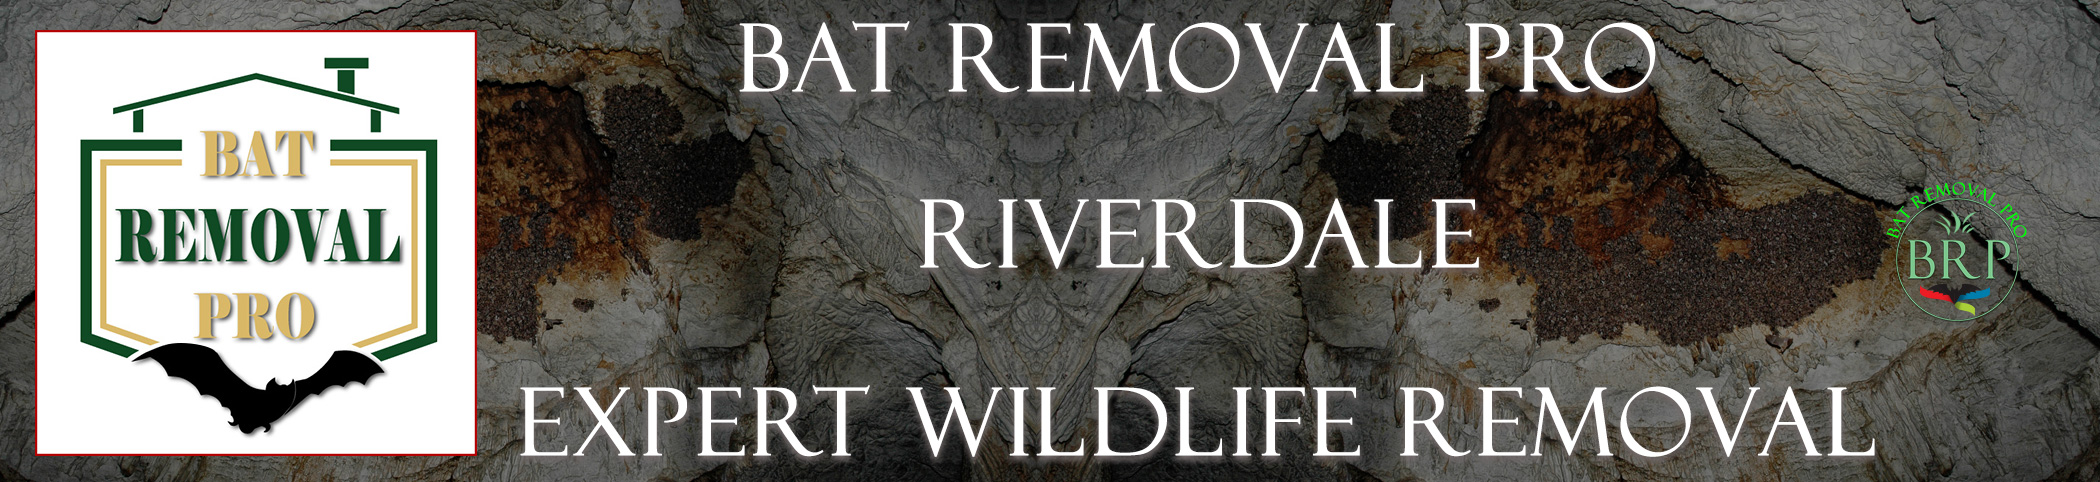 Riverdale-bat-removal-at-bat-removal-pro-header-image